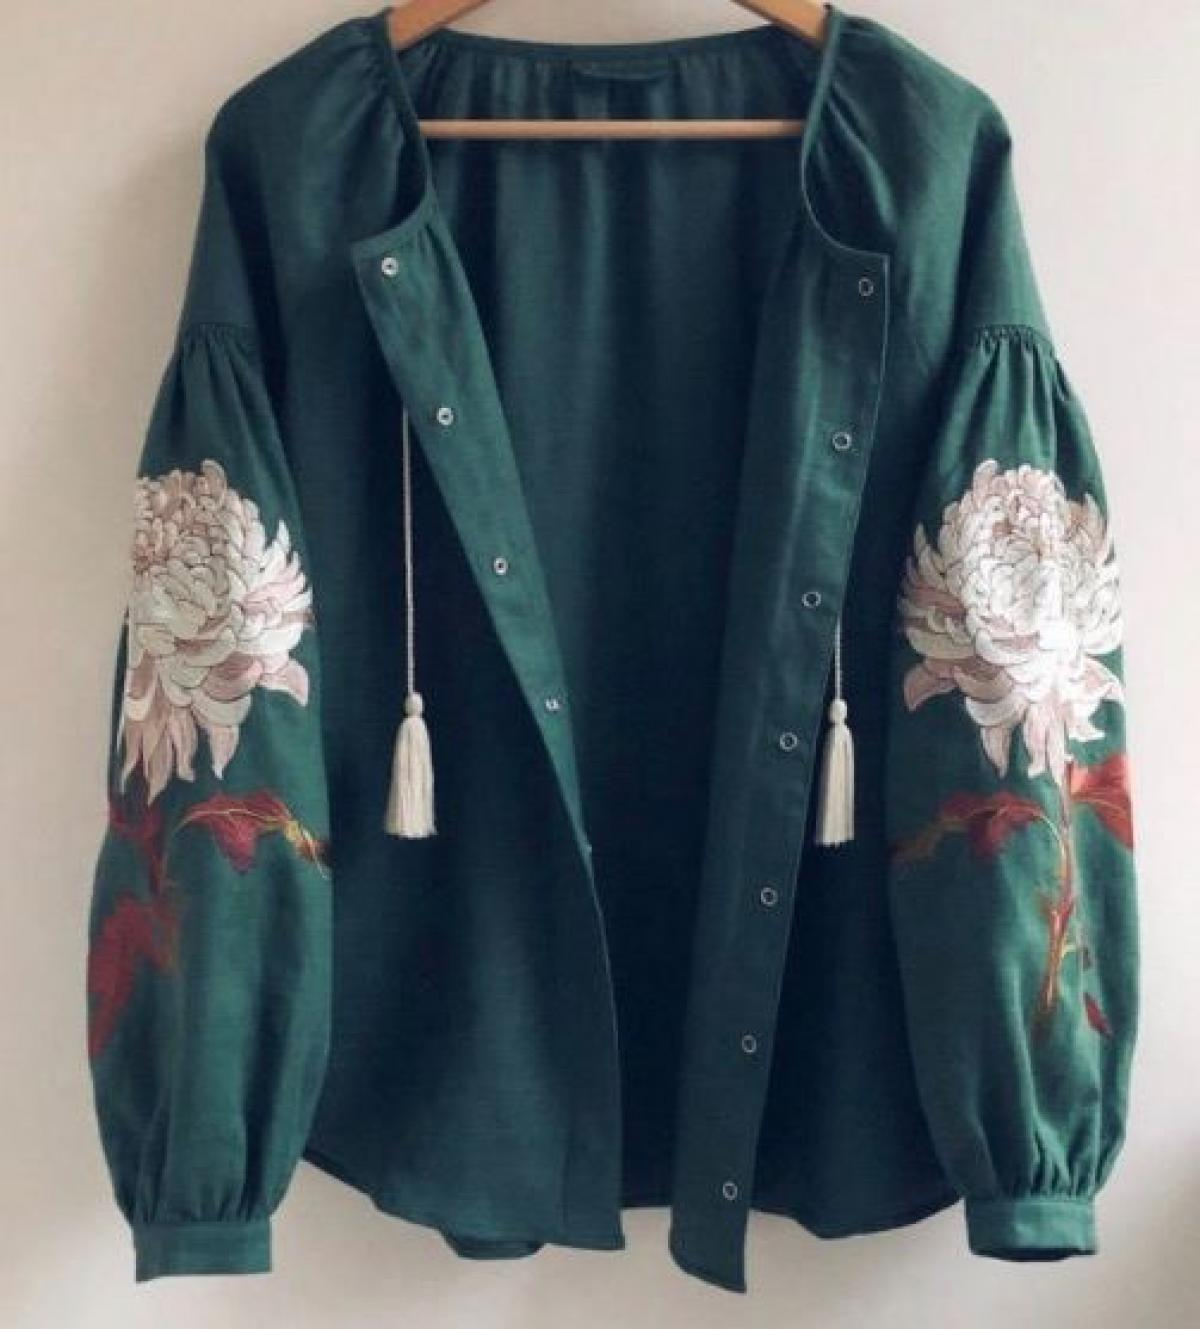 Women's green embroidered shirt with embroidered chrysanthemum